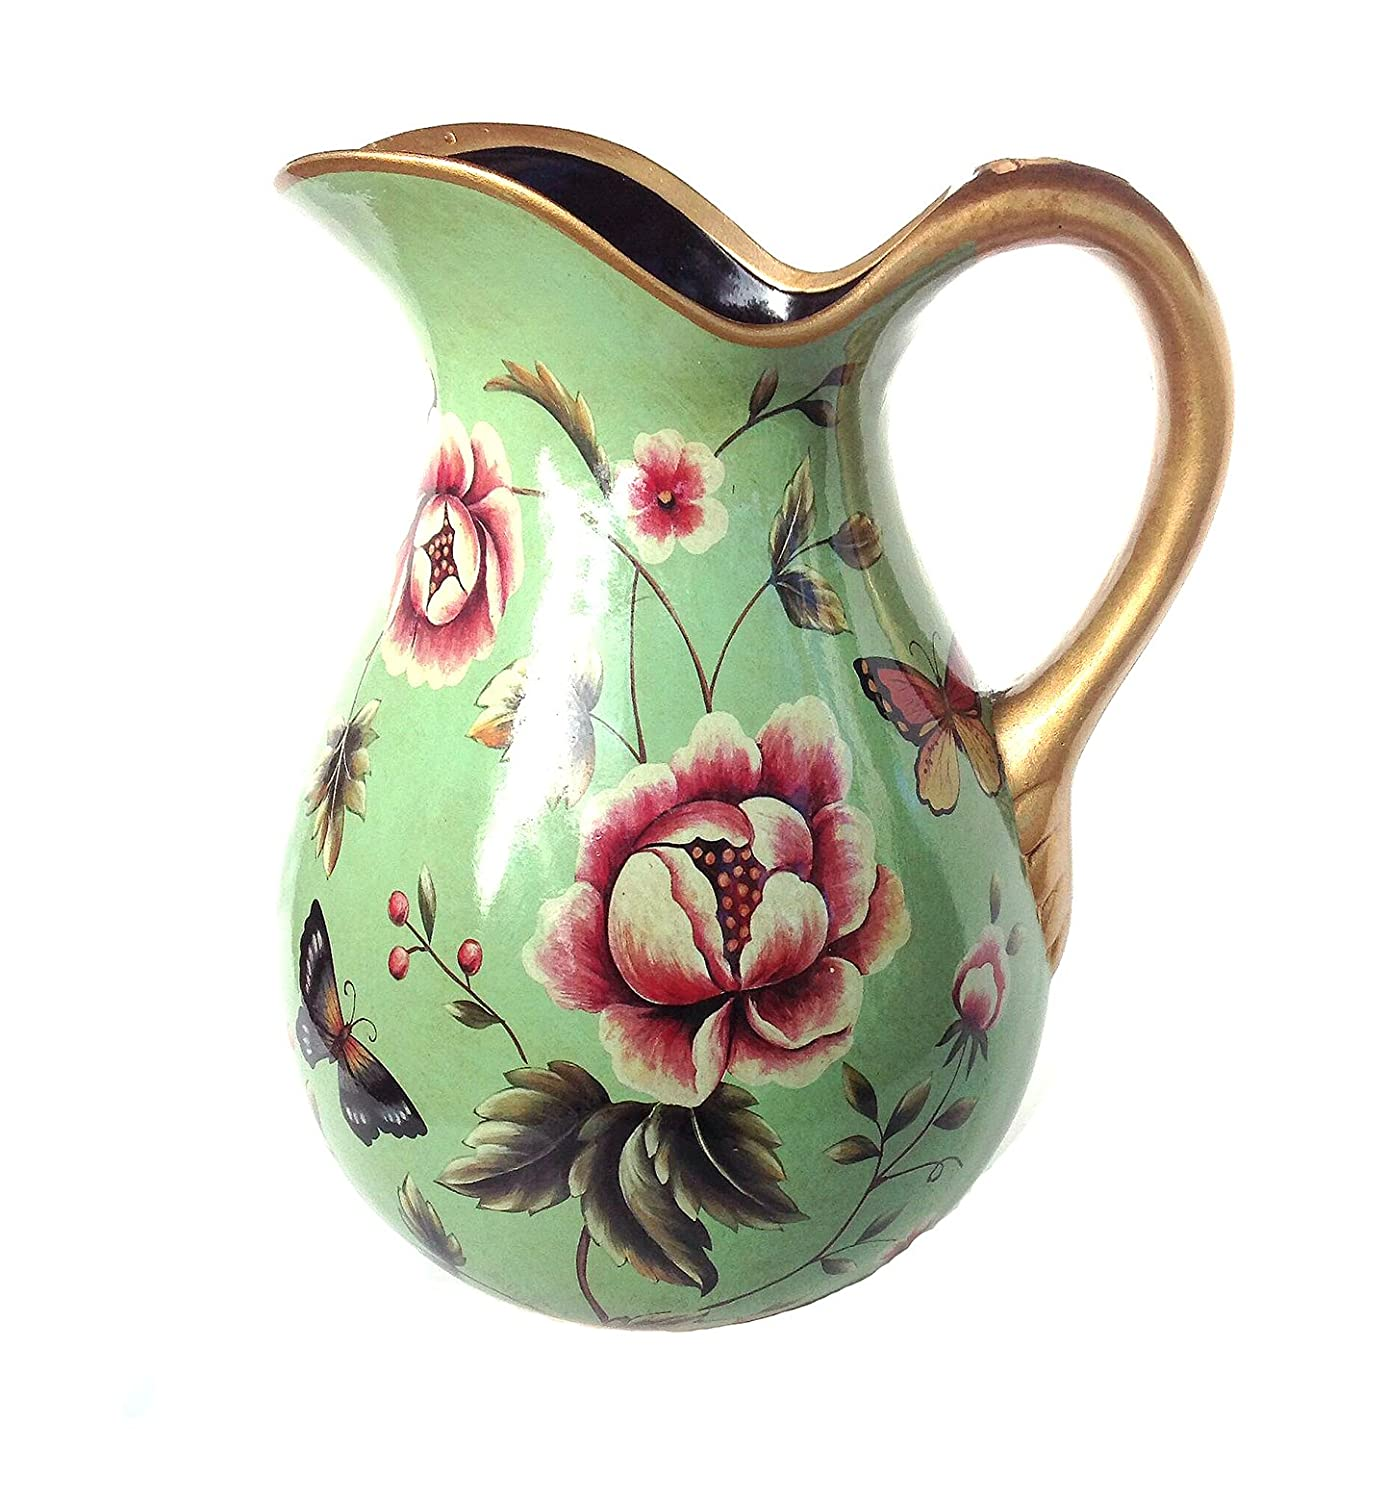 Light Green Body with red Floral Country Time Flower and Butterfly Wrapped Display Pitcher